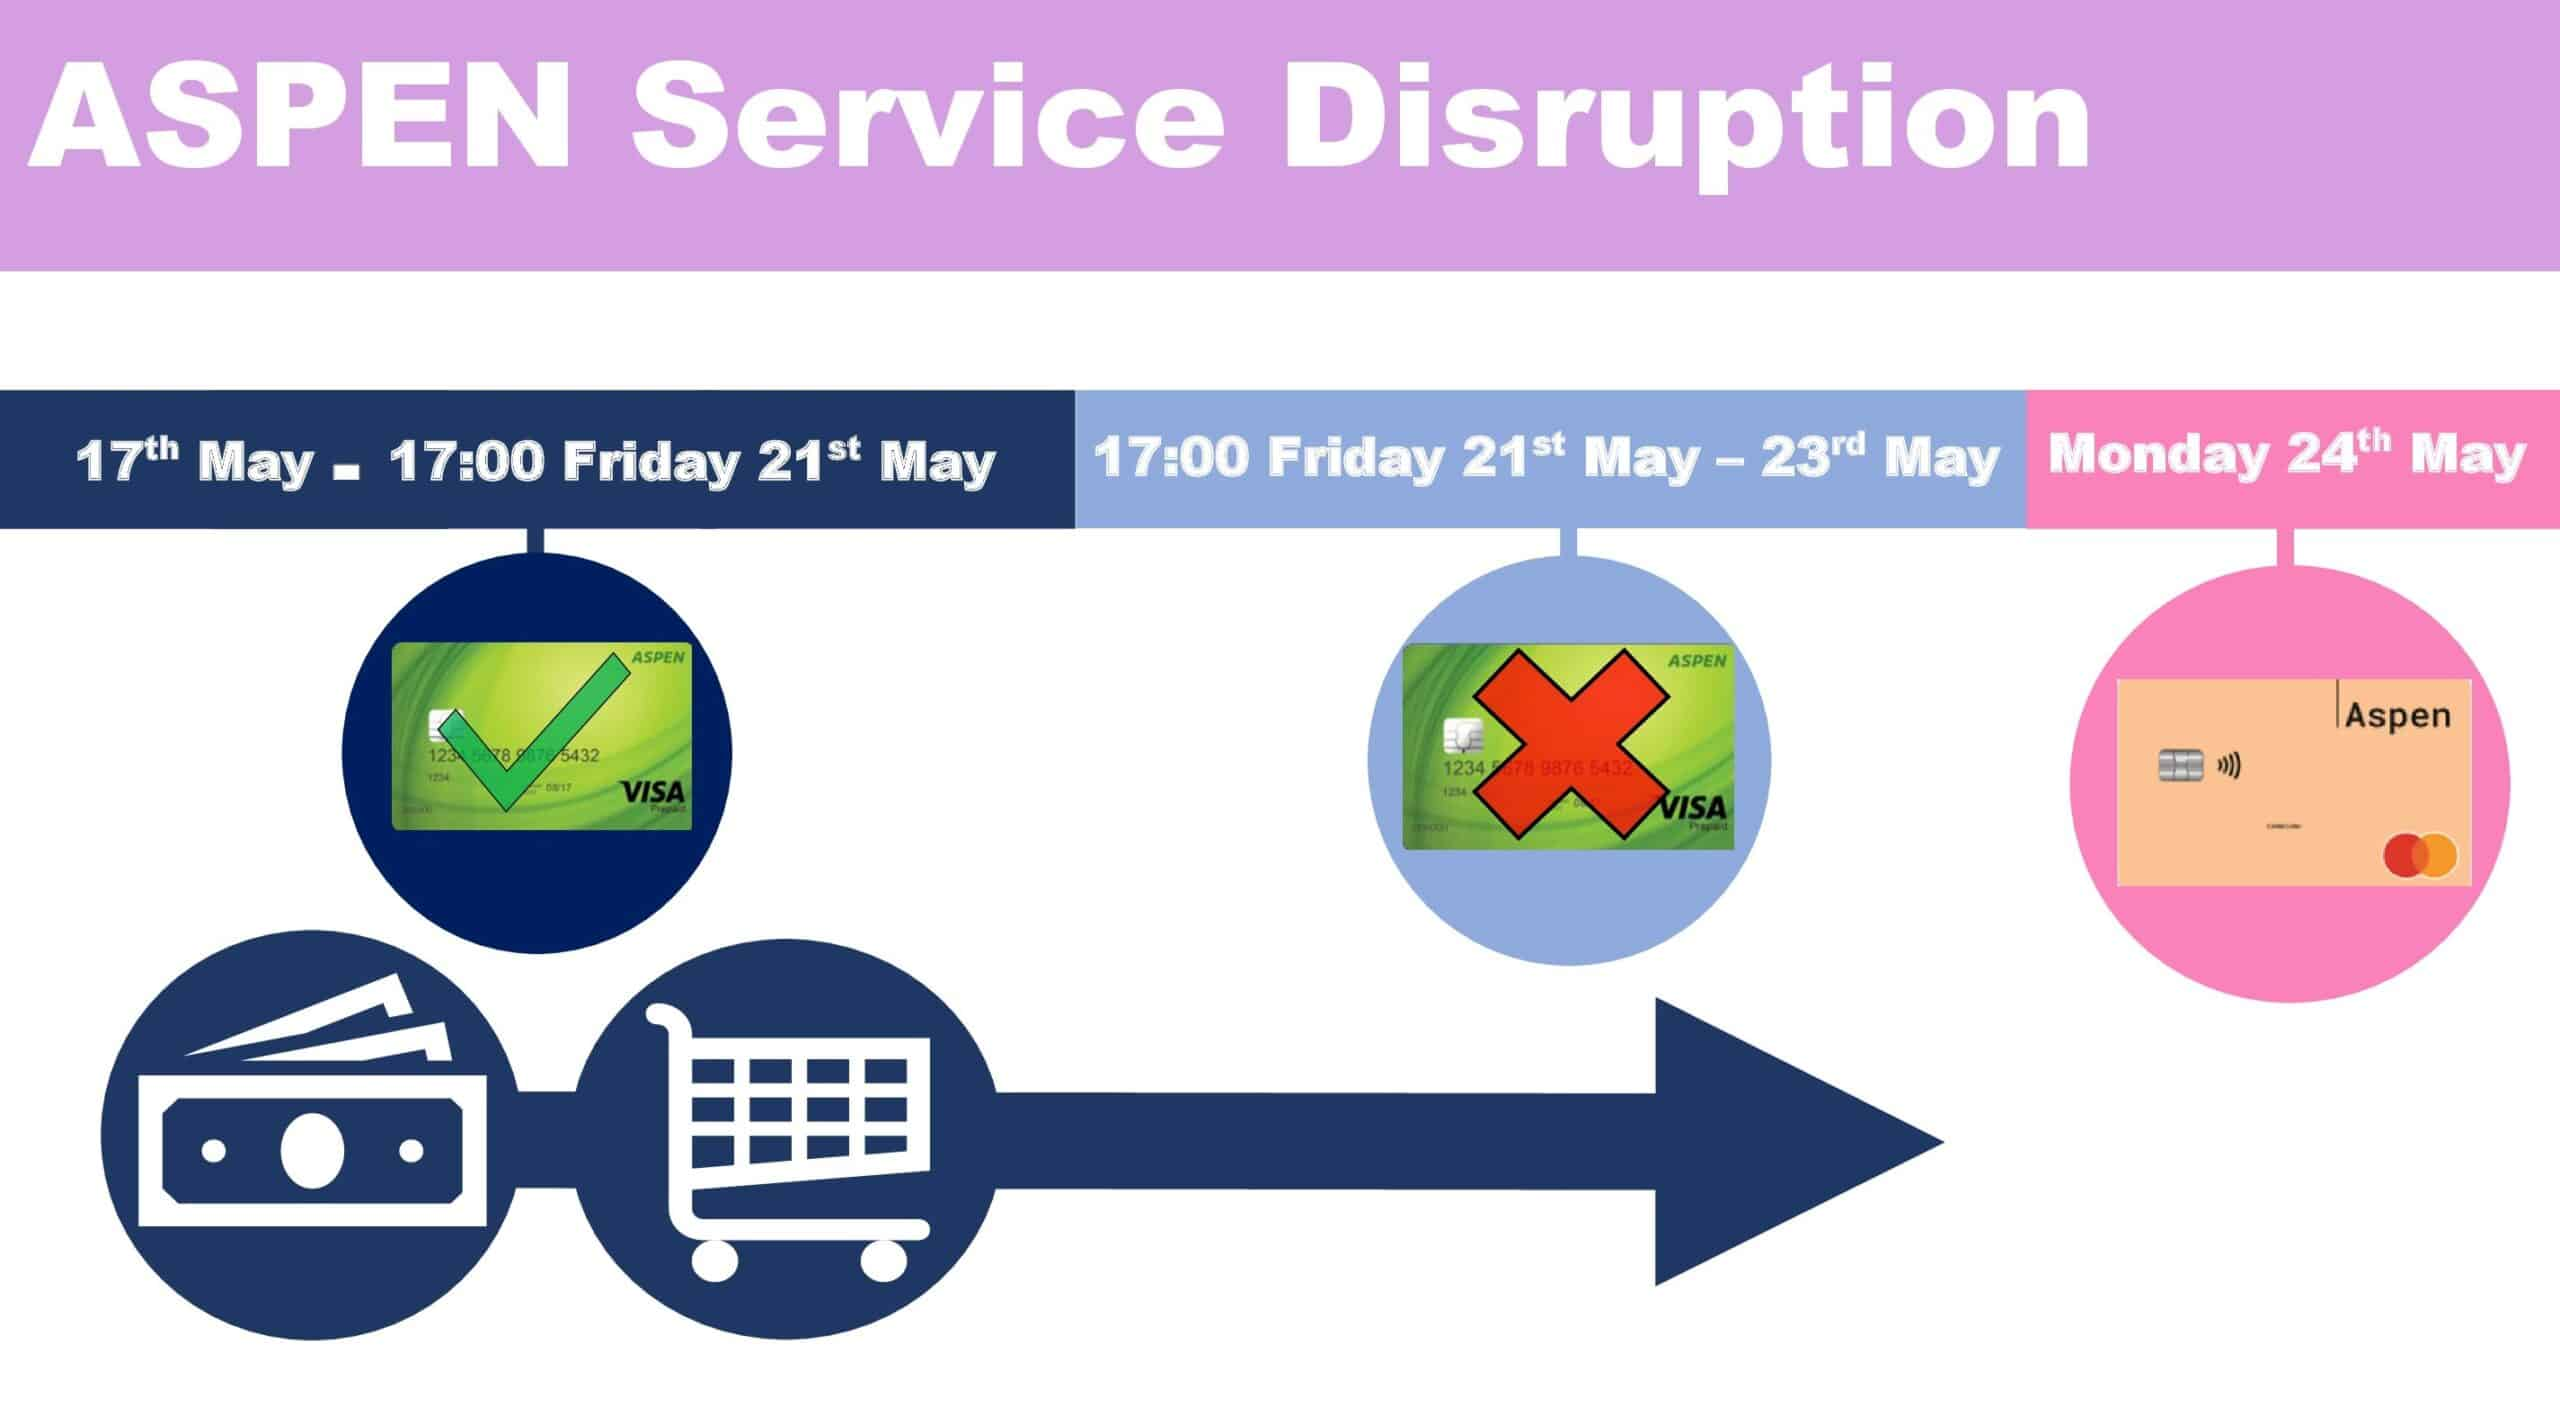 Make all purchases/withdrawals before 17:00 Friday 21st May with your green ASPEN card. ASPEN will be unavailable from 17:00 Friday 21st May – 09:00 Monday 24th May. Use your new PFS ASPEN card from 09:00 Monday 24th May.